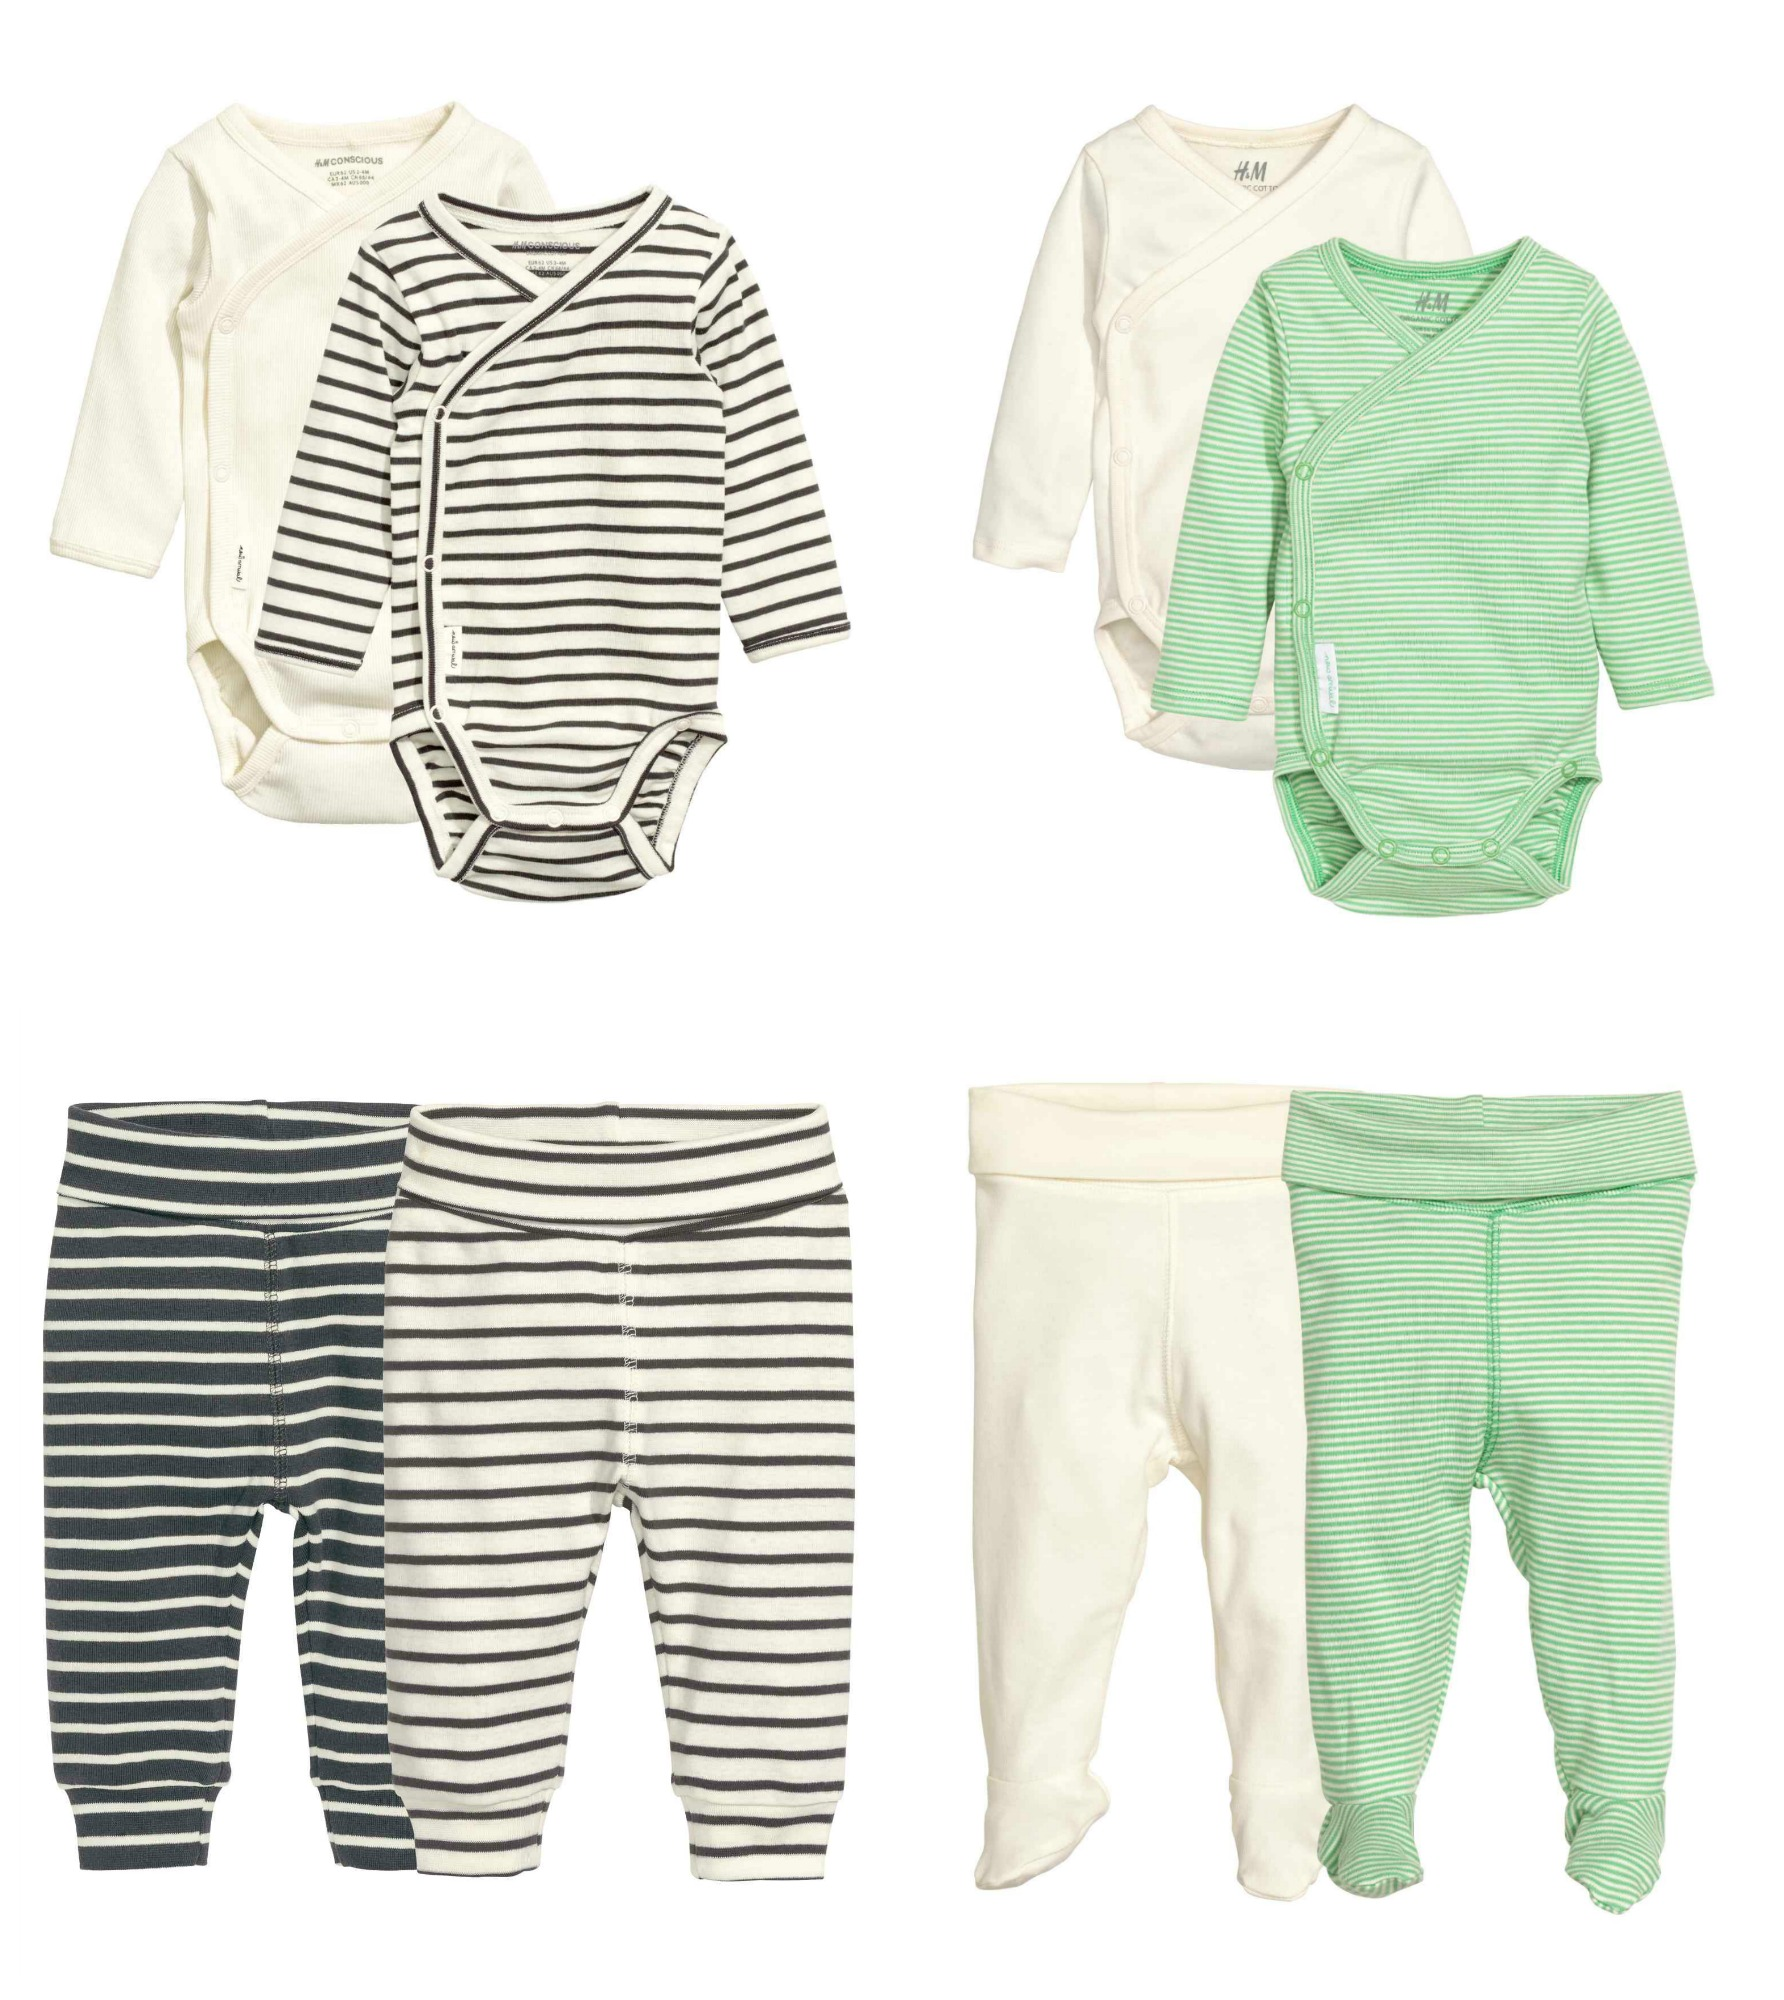 Gender Neutral 'Coming Home' Baby Outfits From H&M